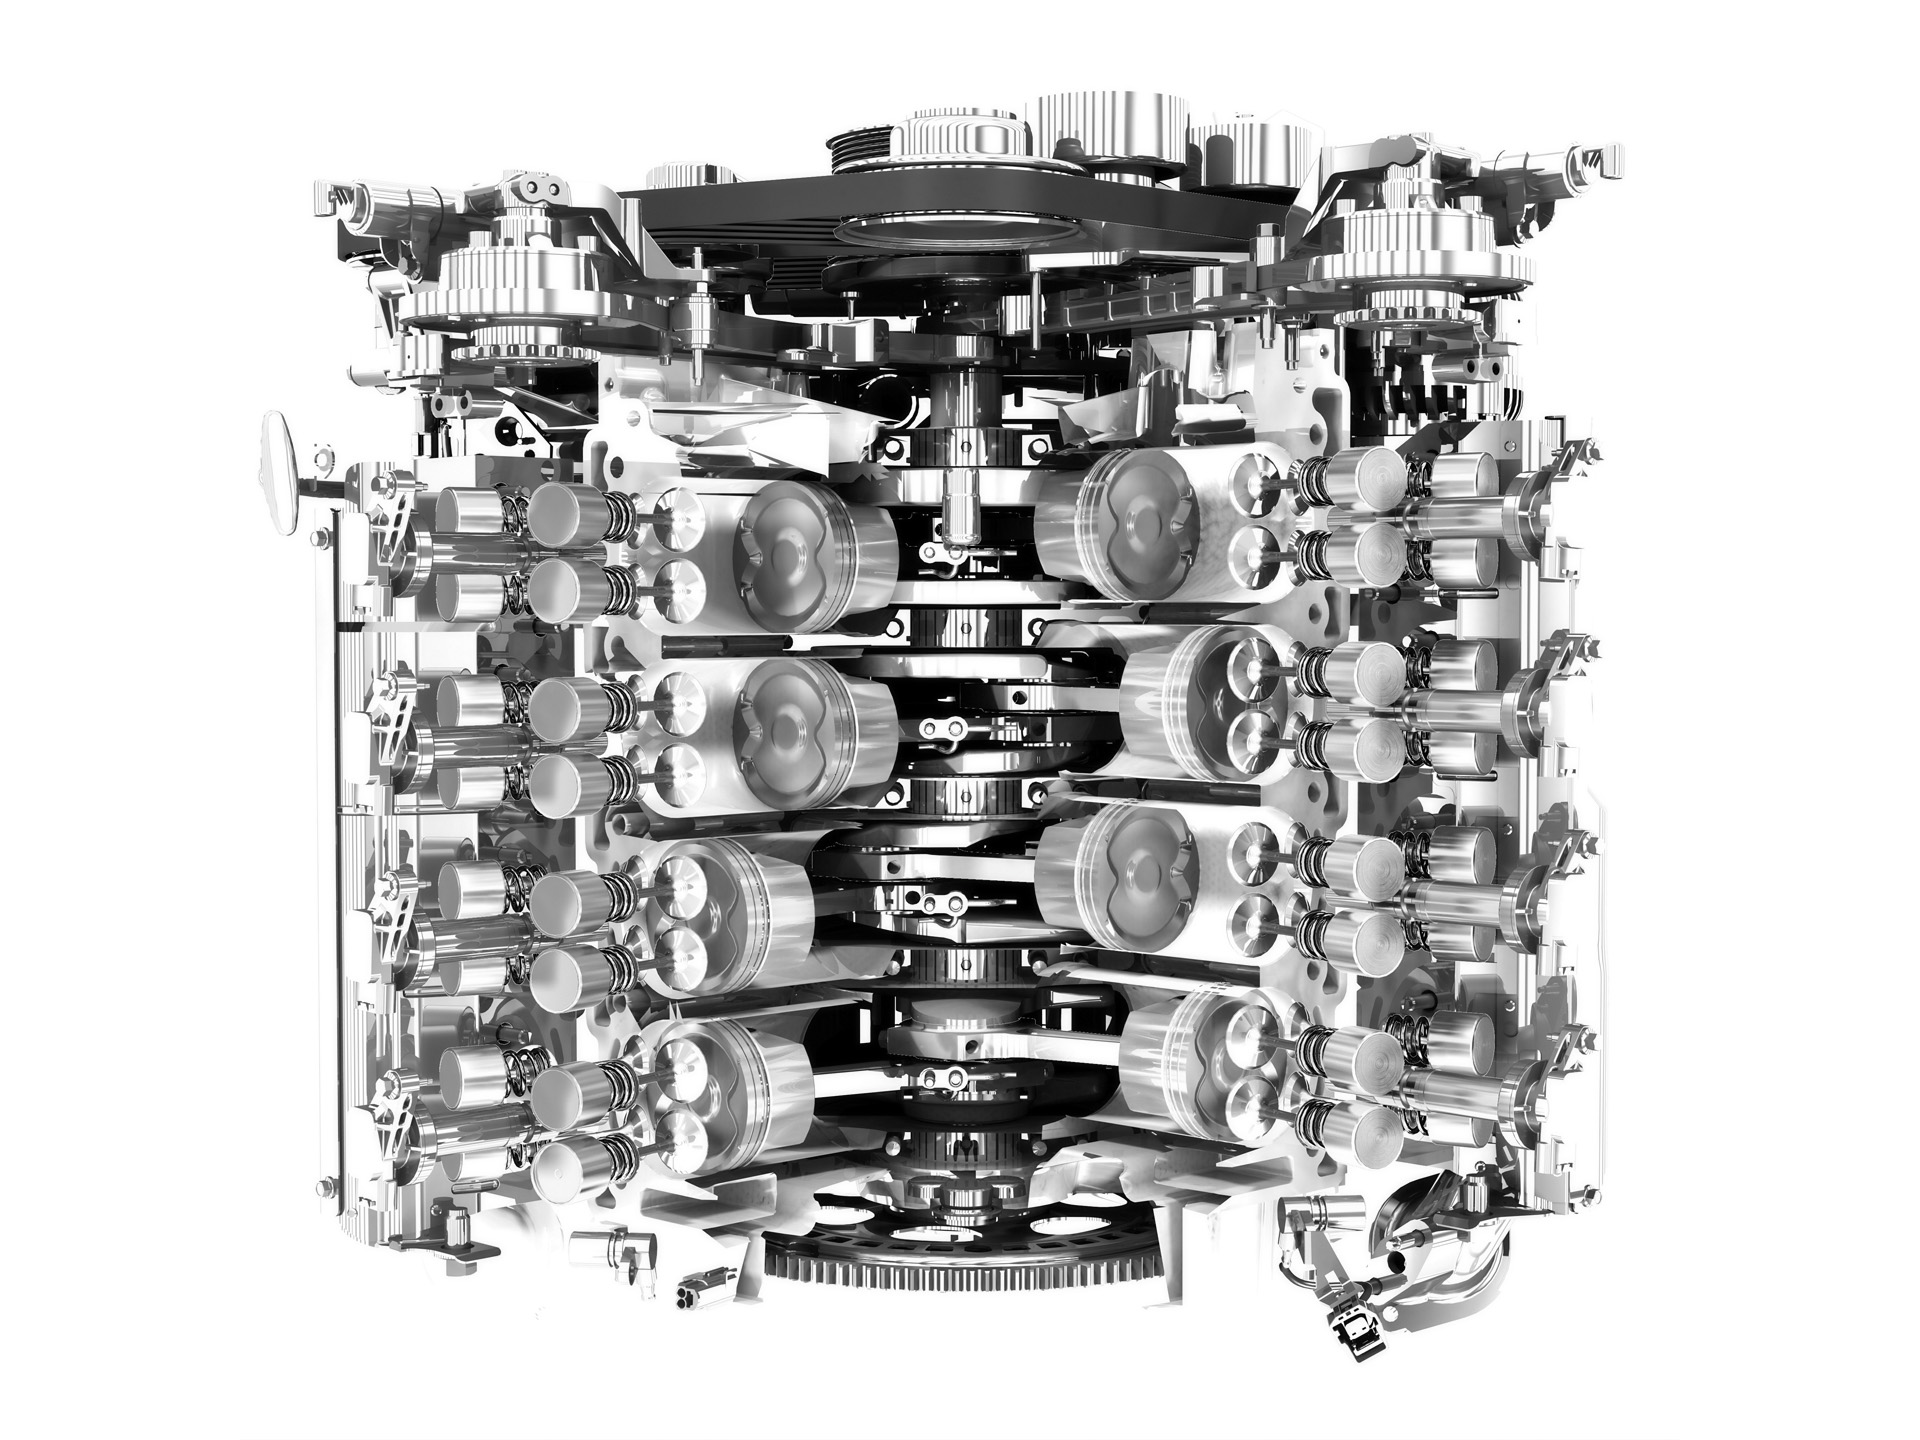 Sample P0474 Engine